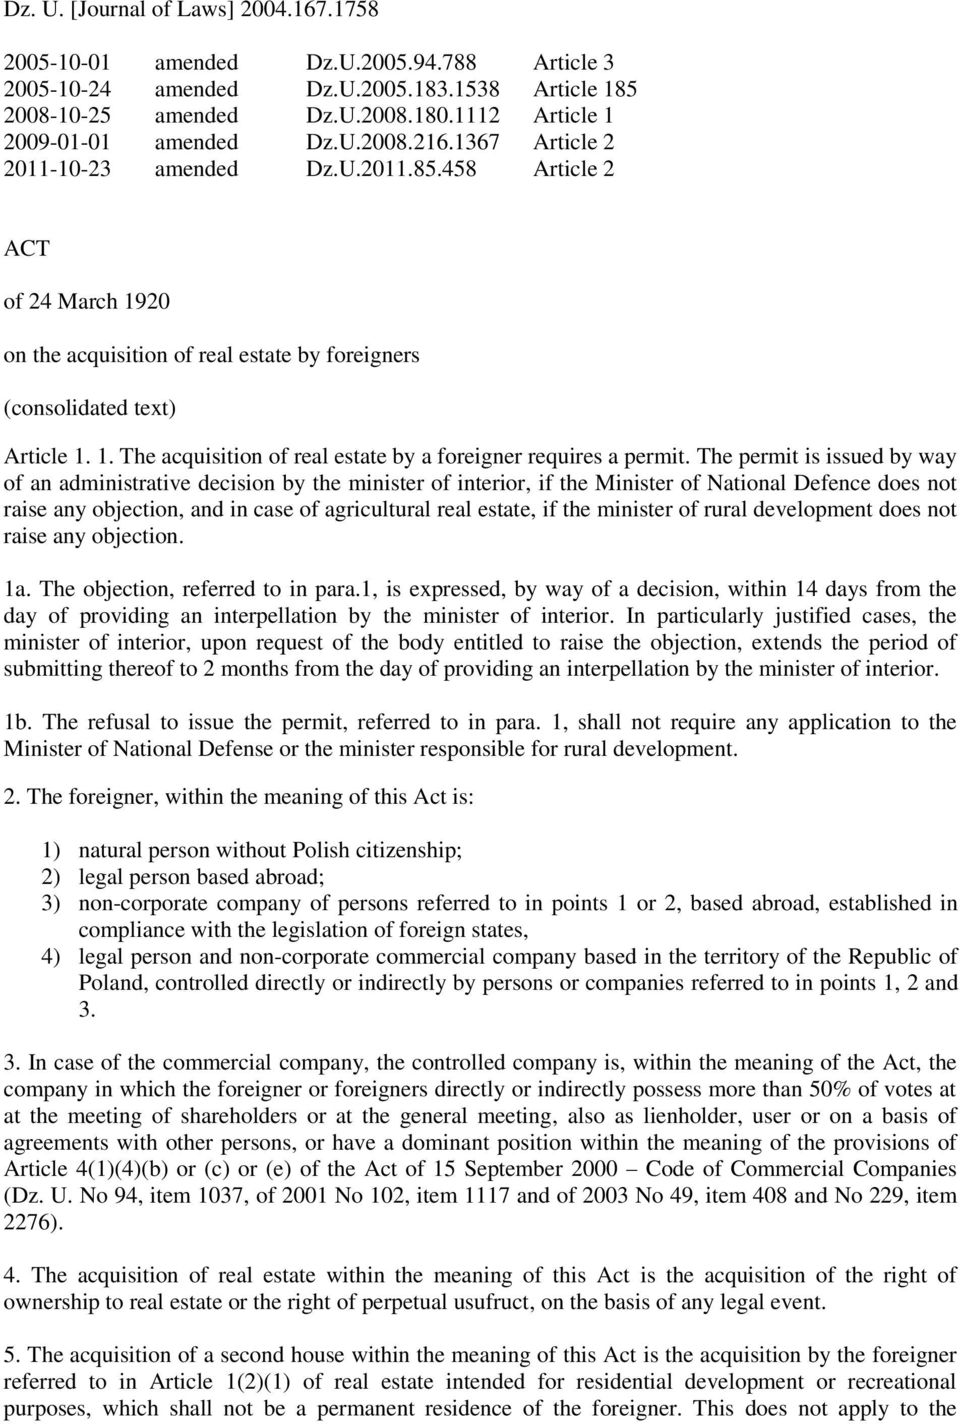 458 Article 2 ACT of 24 March 1920 on the acquisition of real estate by foreigners (consolidated text) Article 1. 1. The acquisition of real estate by a foreigner requires a permit.